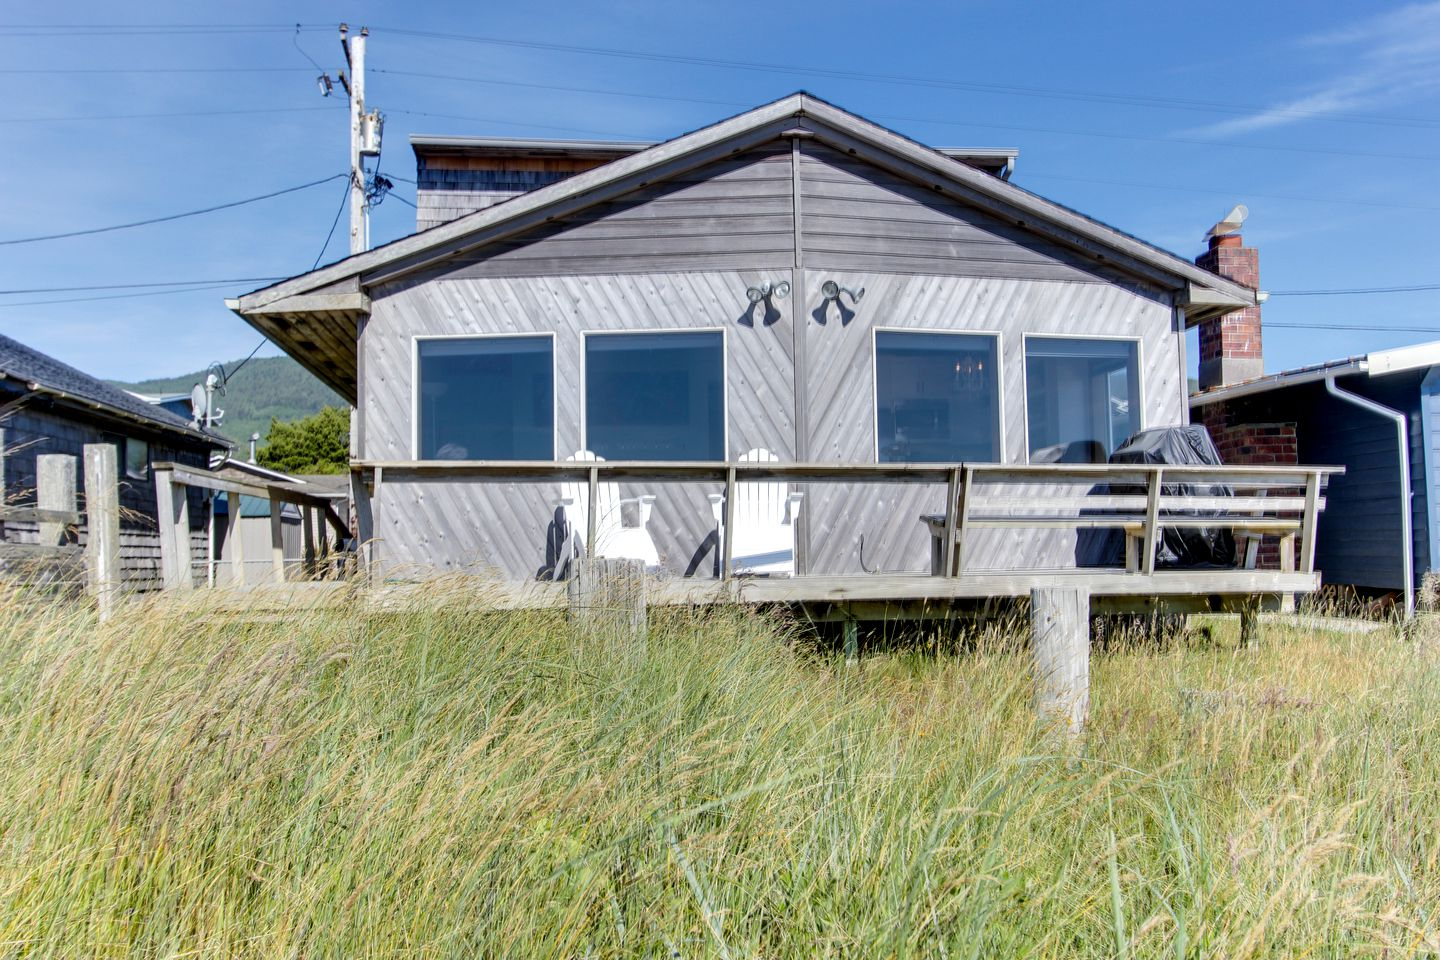 Cottages (Rockaway Beach, Oregon, United States)